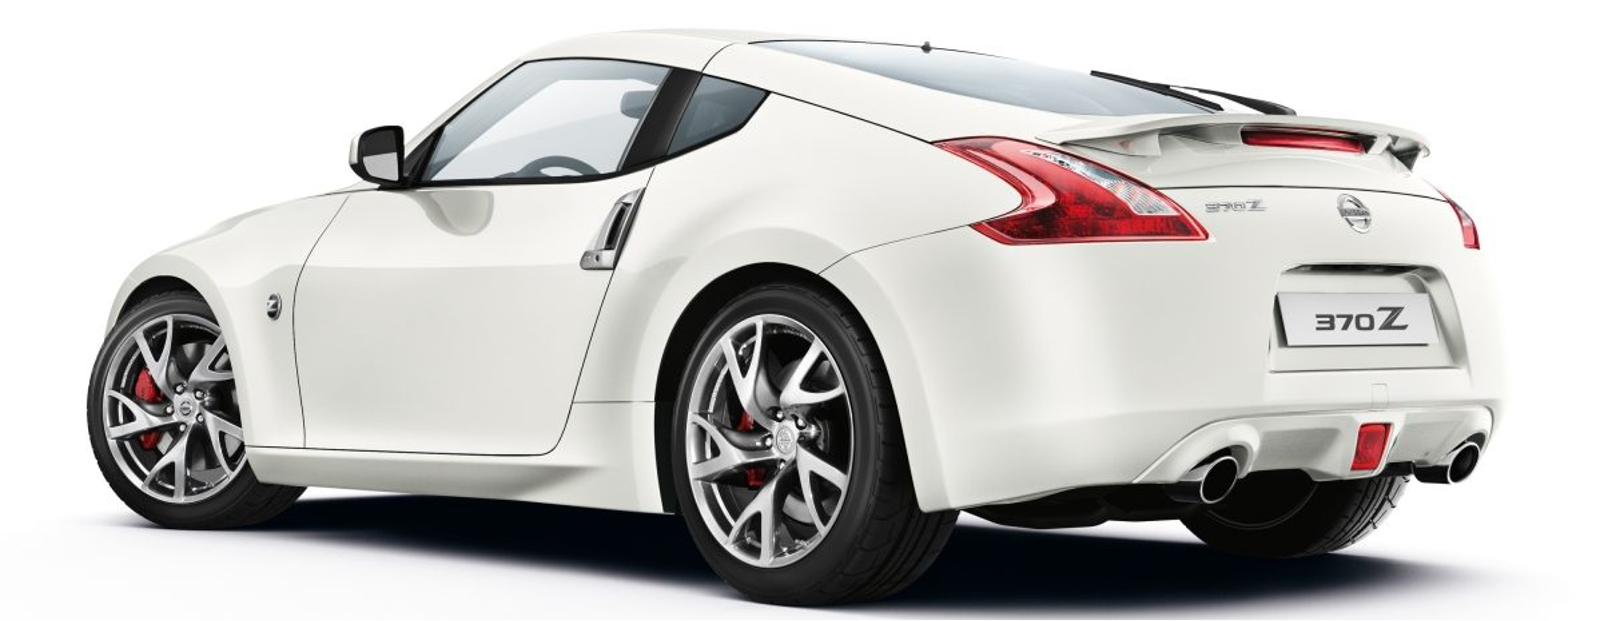 Lateral nissan 370